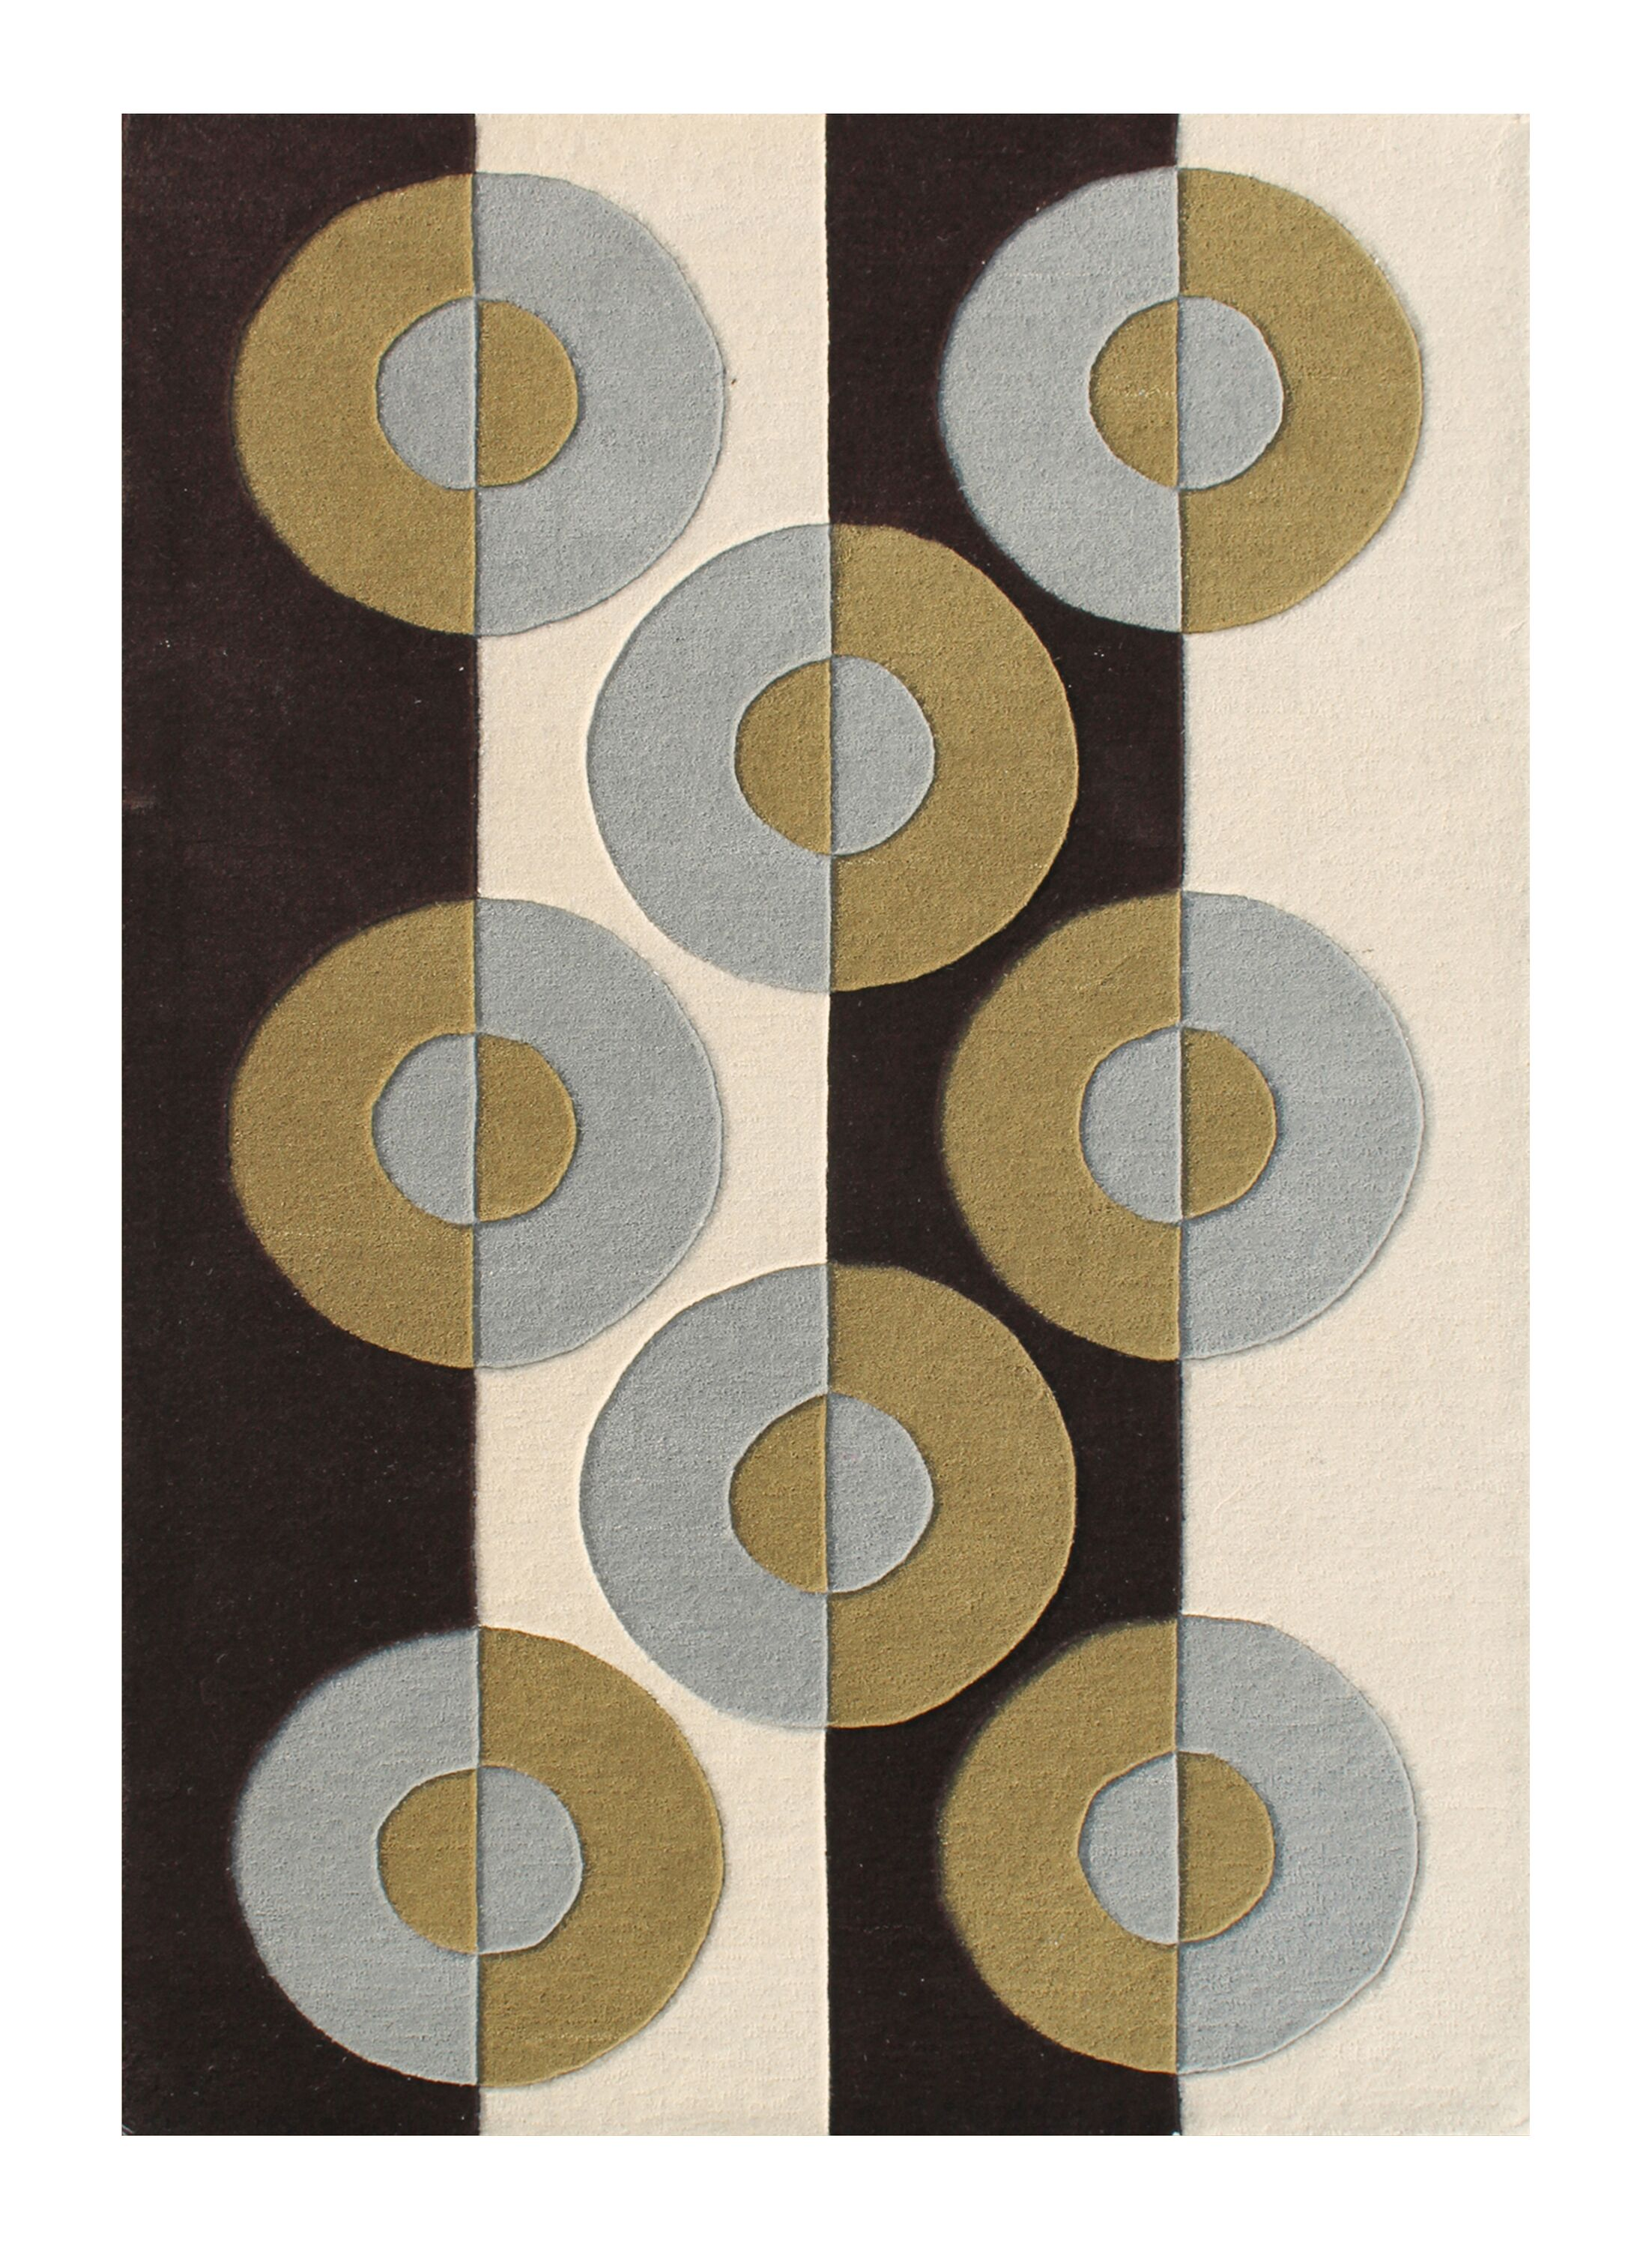 Ellington Hand-Woven Beige/Brown Area Rug Rug Size: 5' X 8'